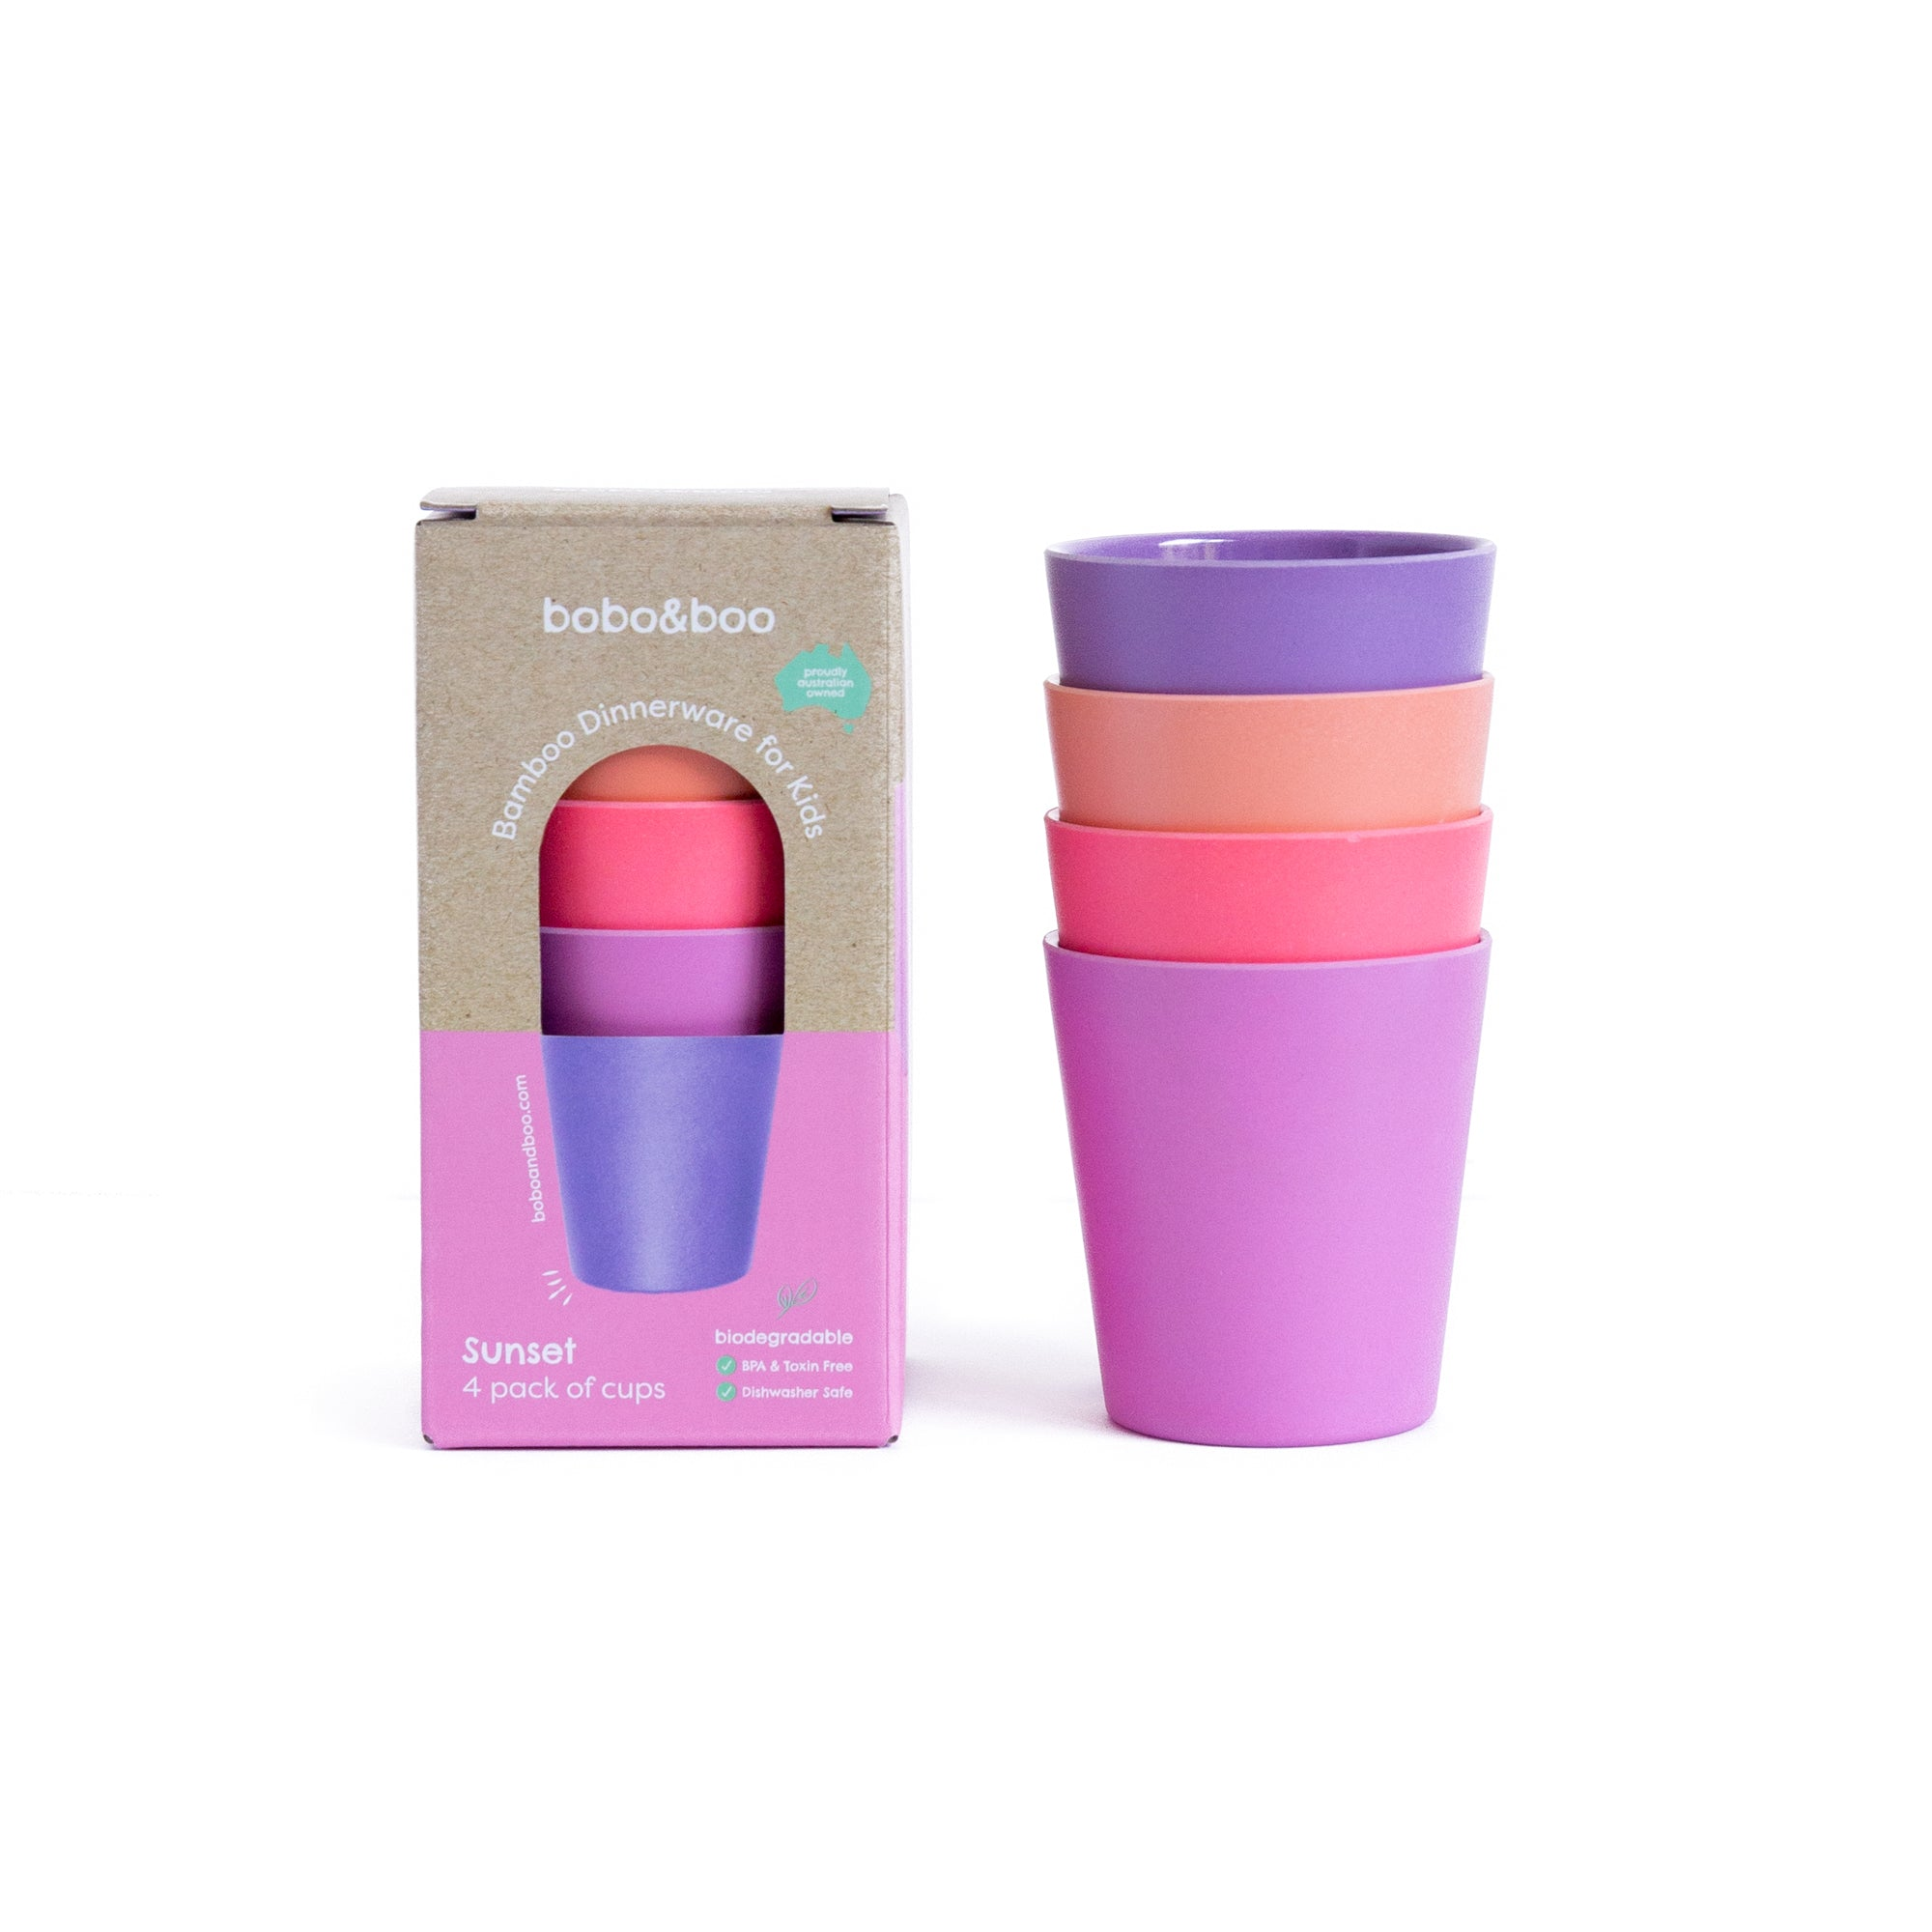 BOBO & BOO - Sunset Bamboo Cup Set